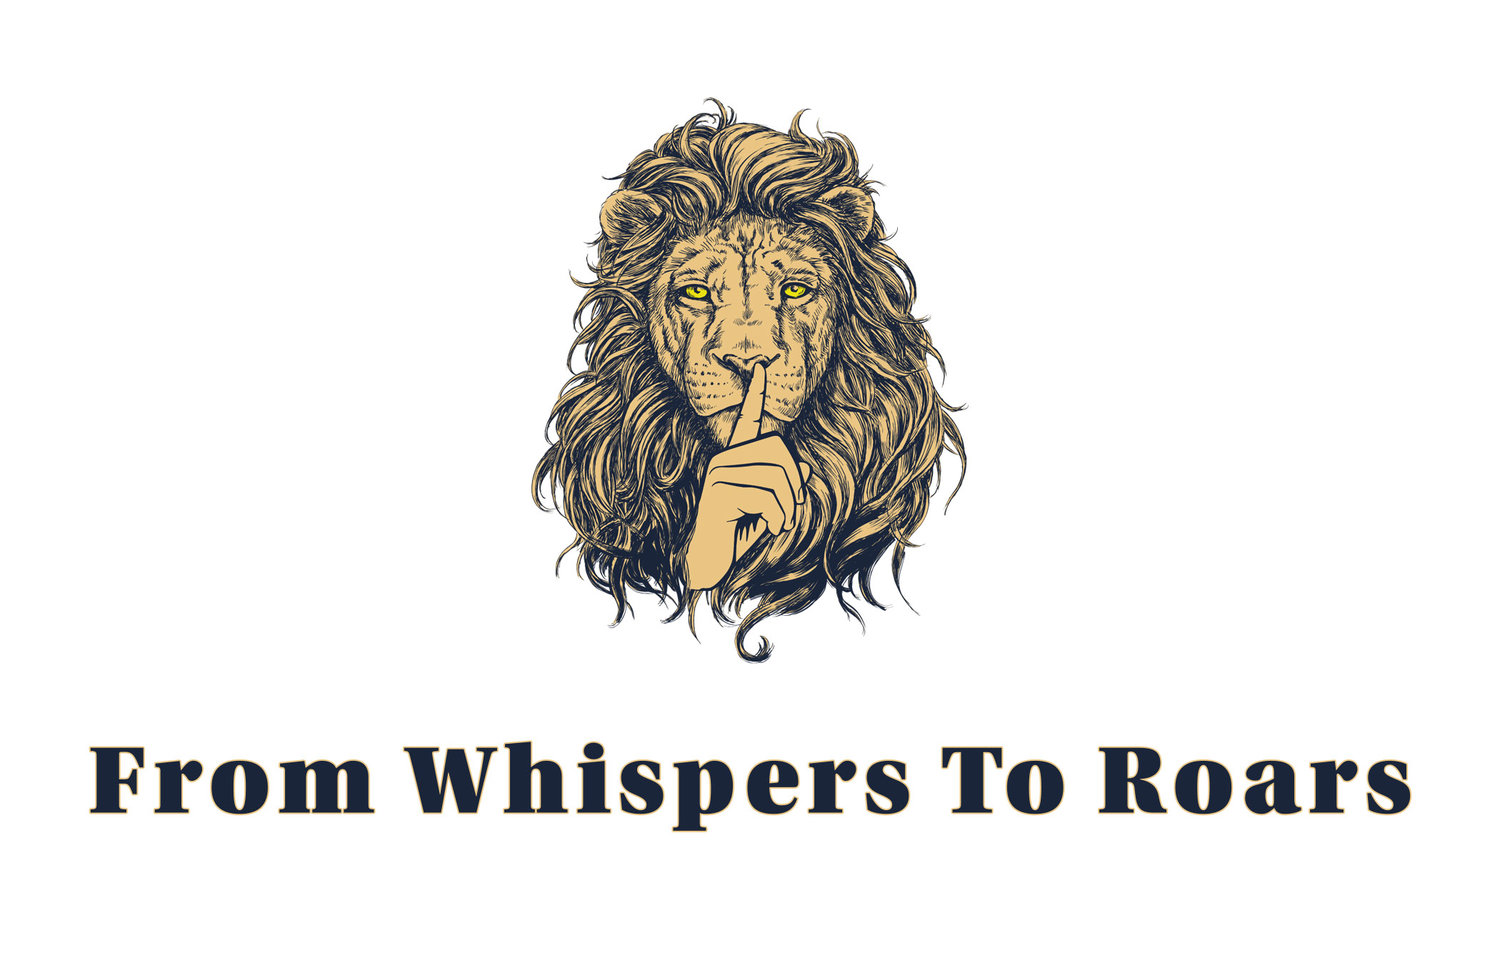 From Whispers To Roars